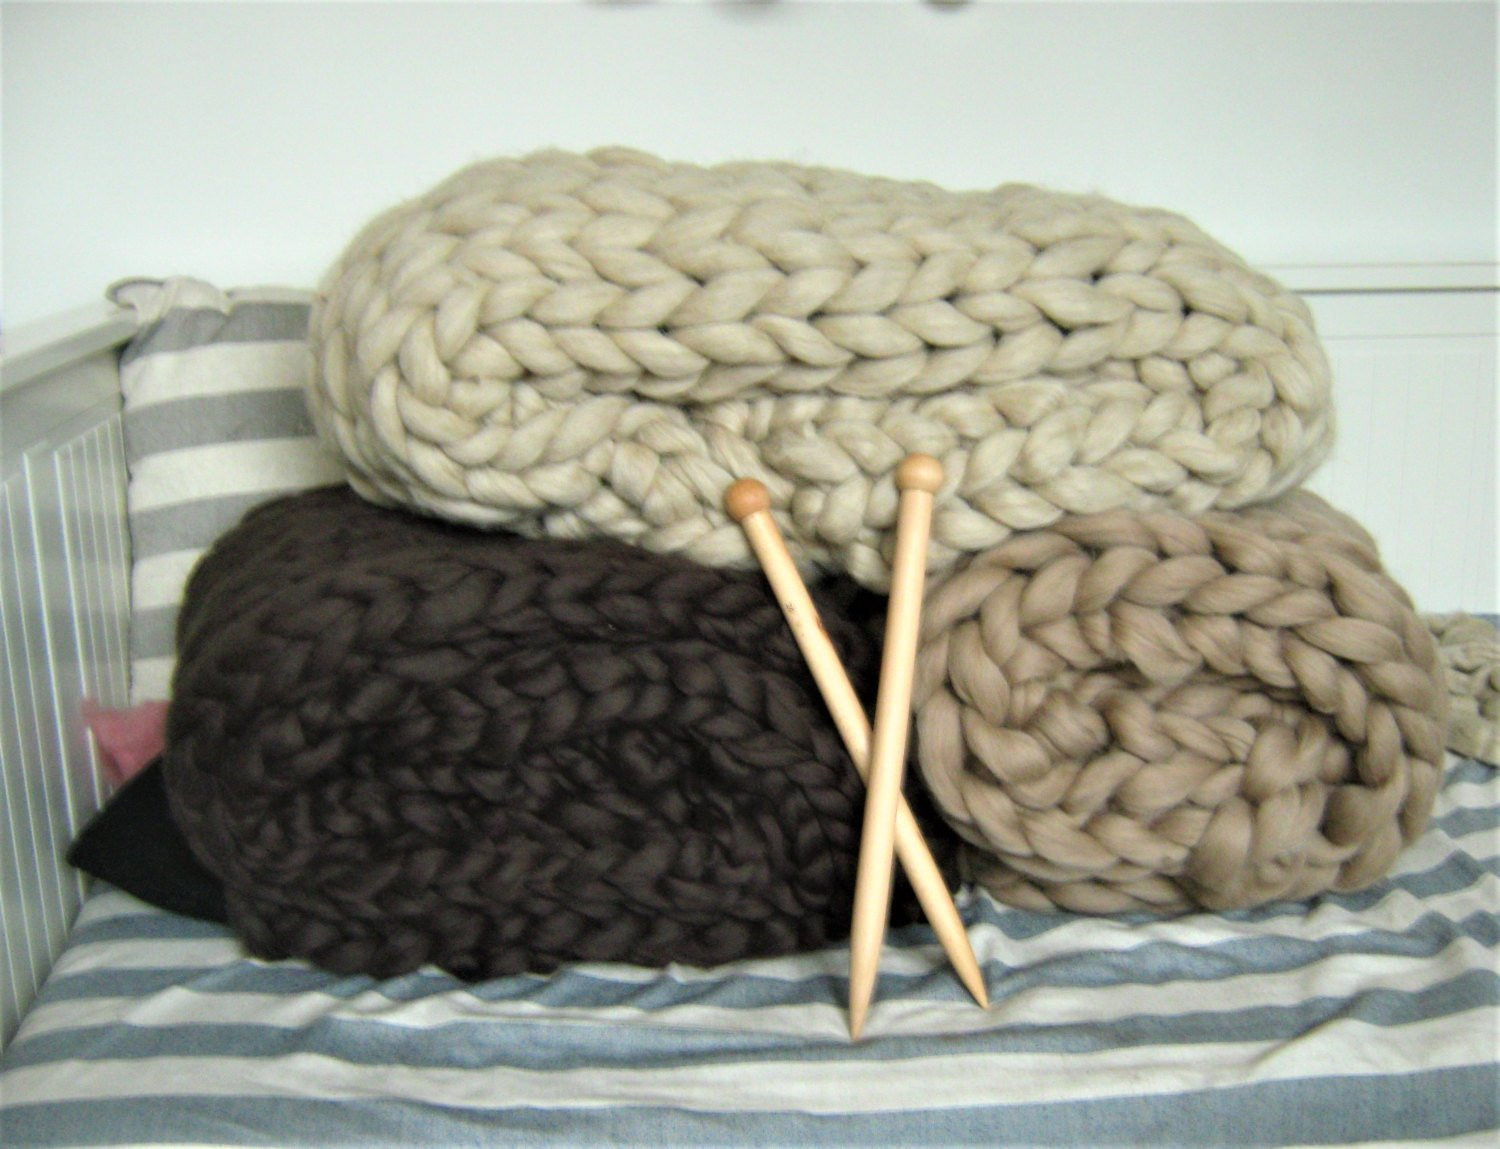 Chunky Knit Wool Best Of Chunky Wool Blanket Arm Knit Blanket Hand Knit Throw Chunky Of Top 41 Pictures Chunky Knit Wool